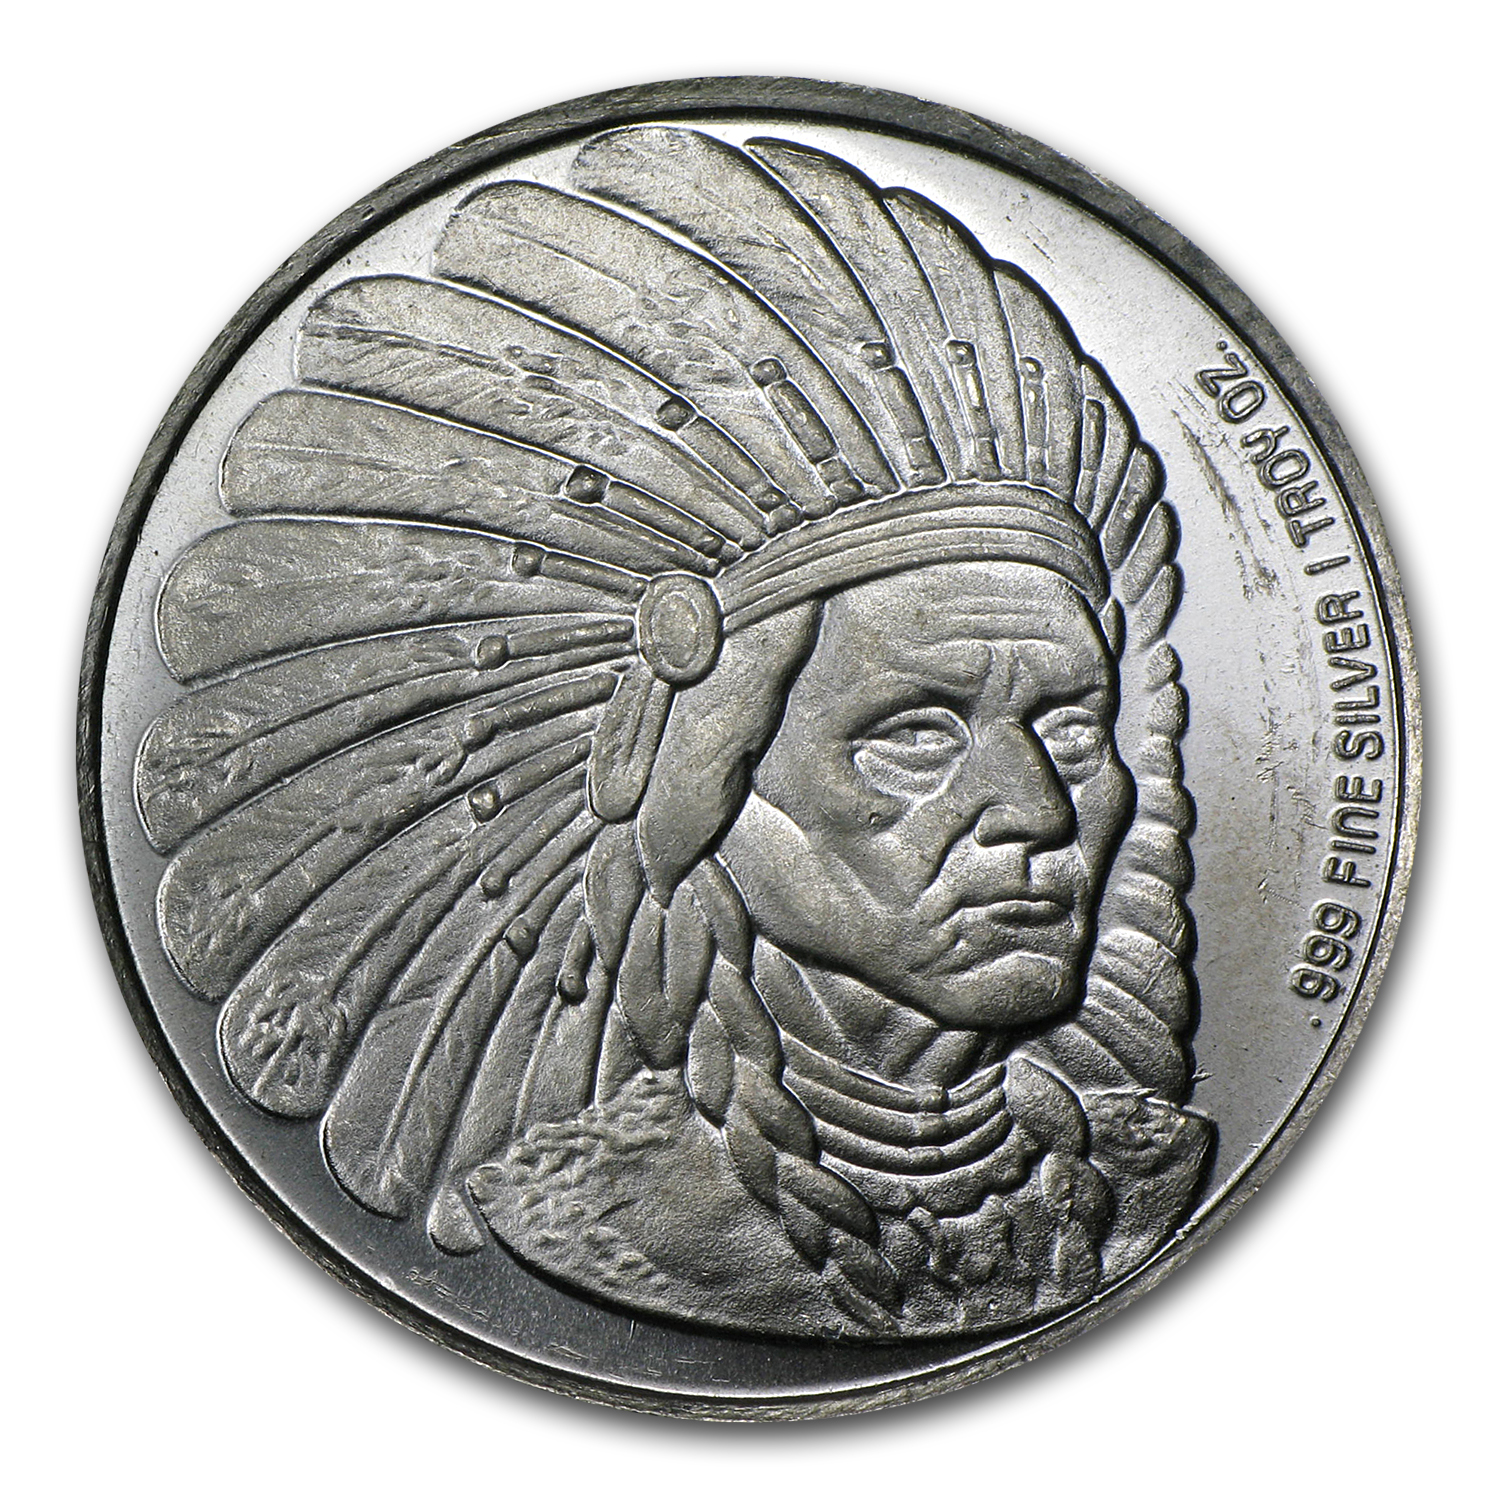 1 oz Silver Rounds - Native American Chief